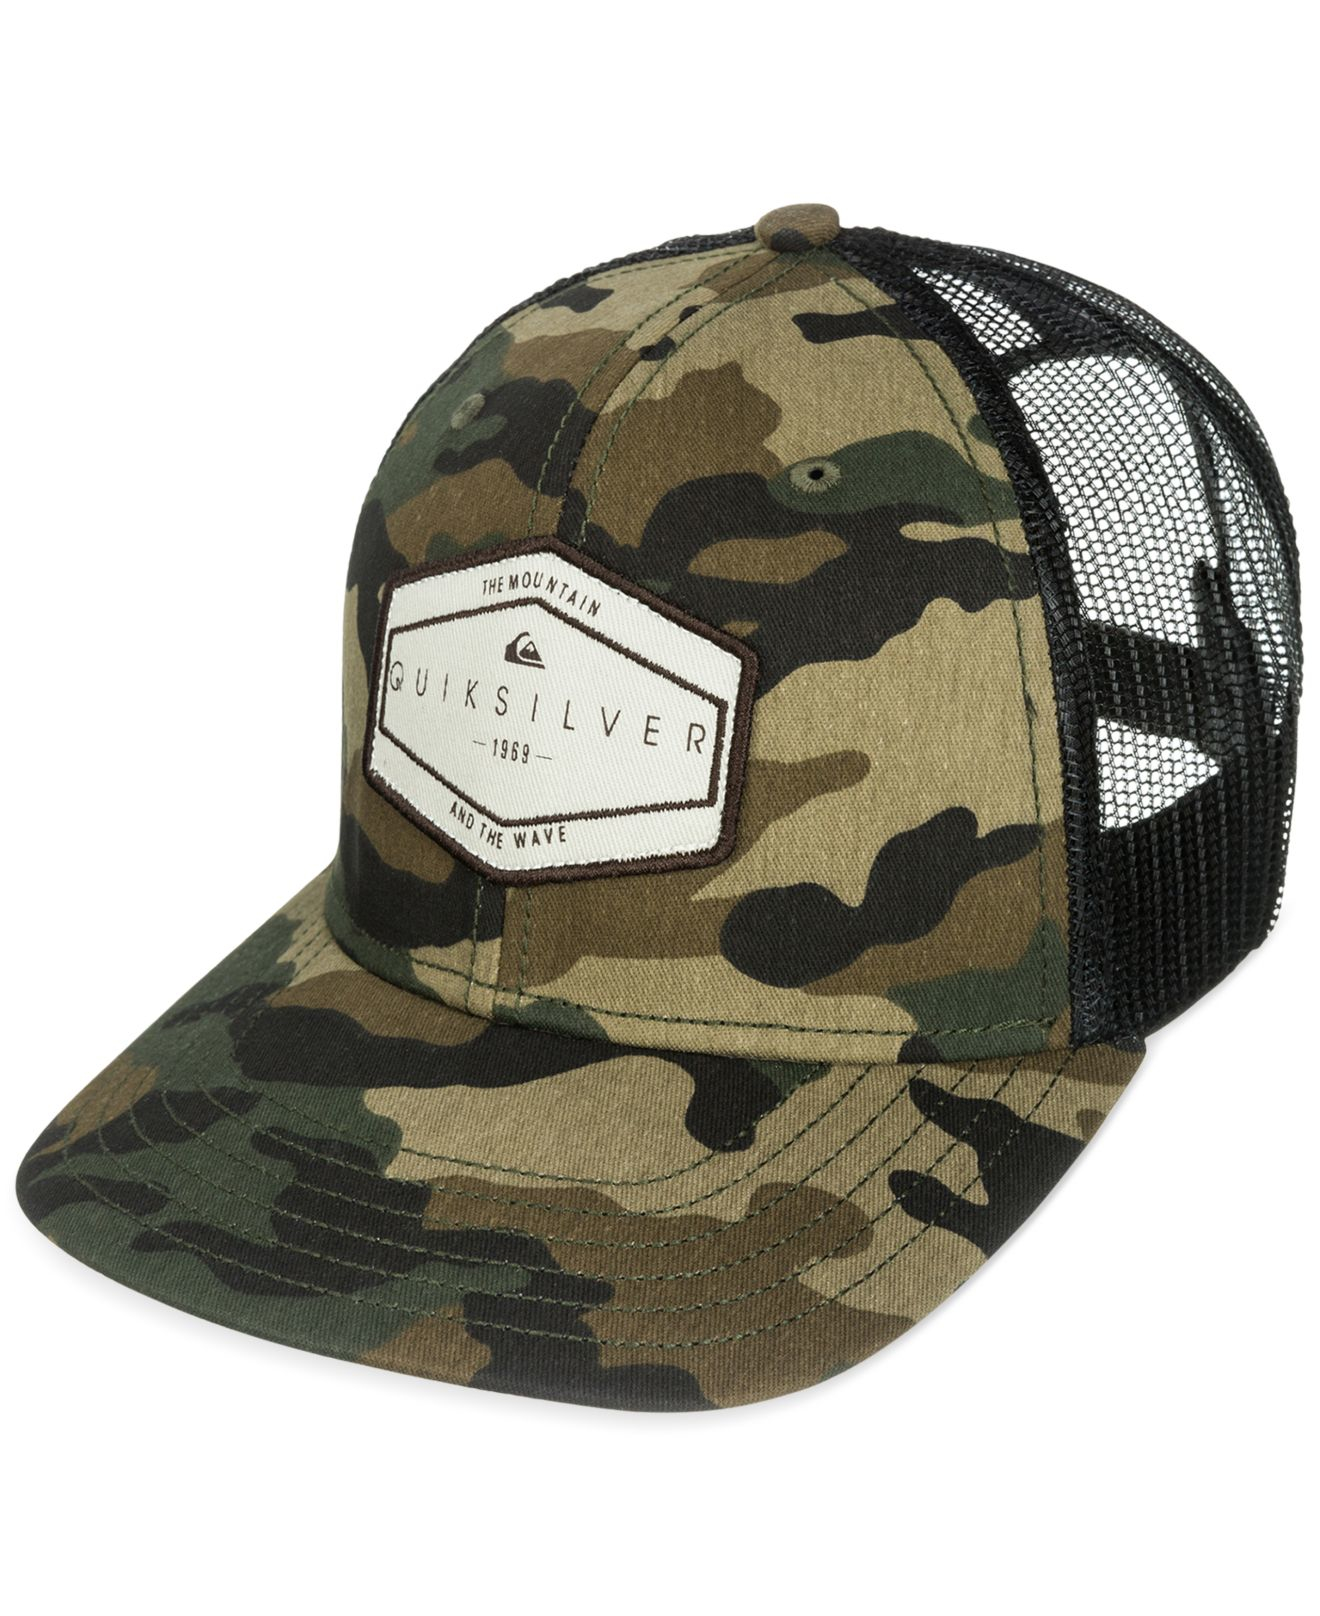 8993c4ec7dd92 ... order lyst quiksilver forever hat in green for men 4be54 1732a